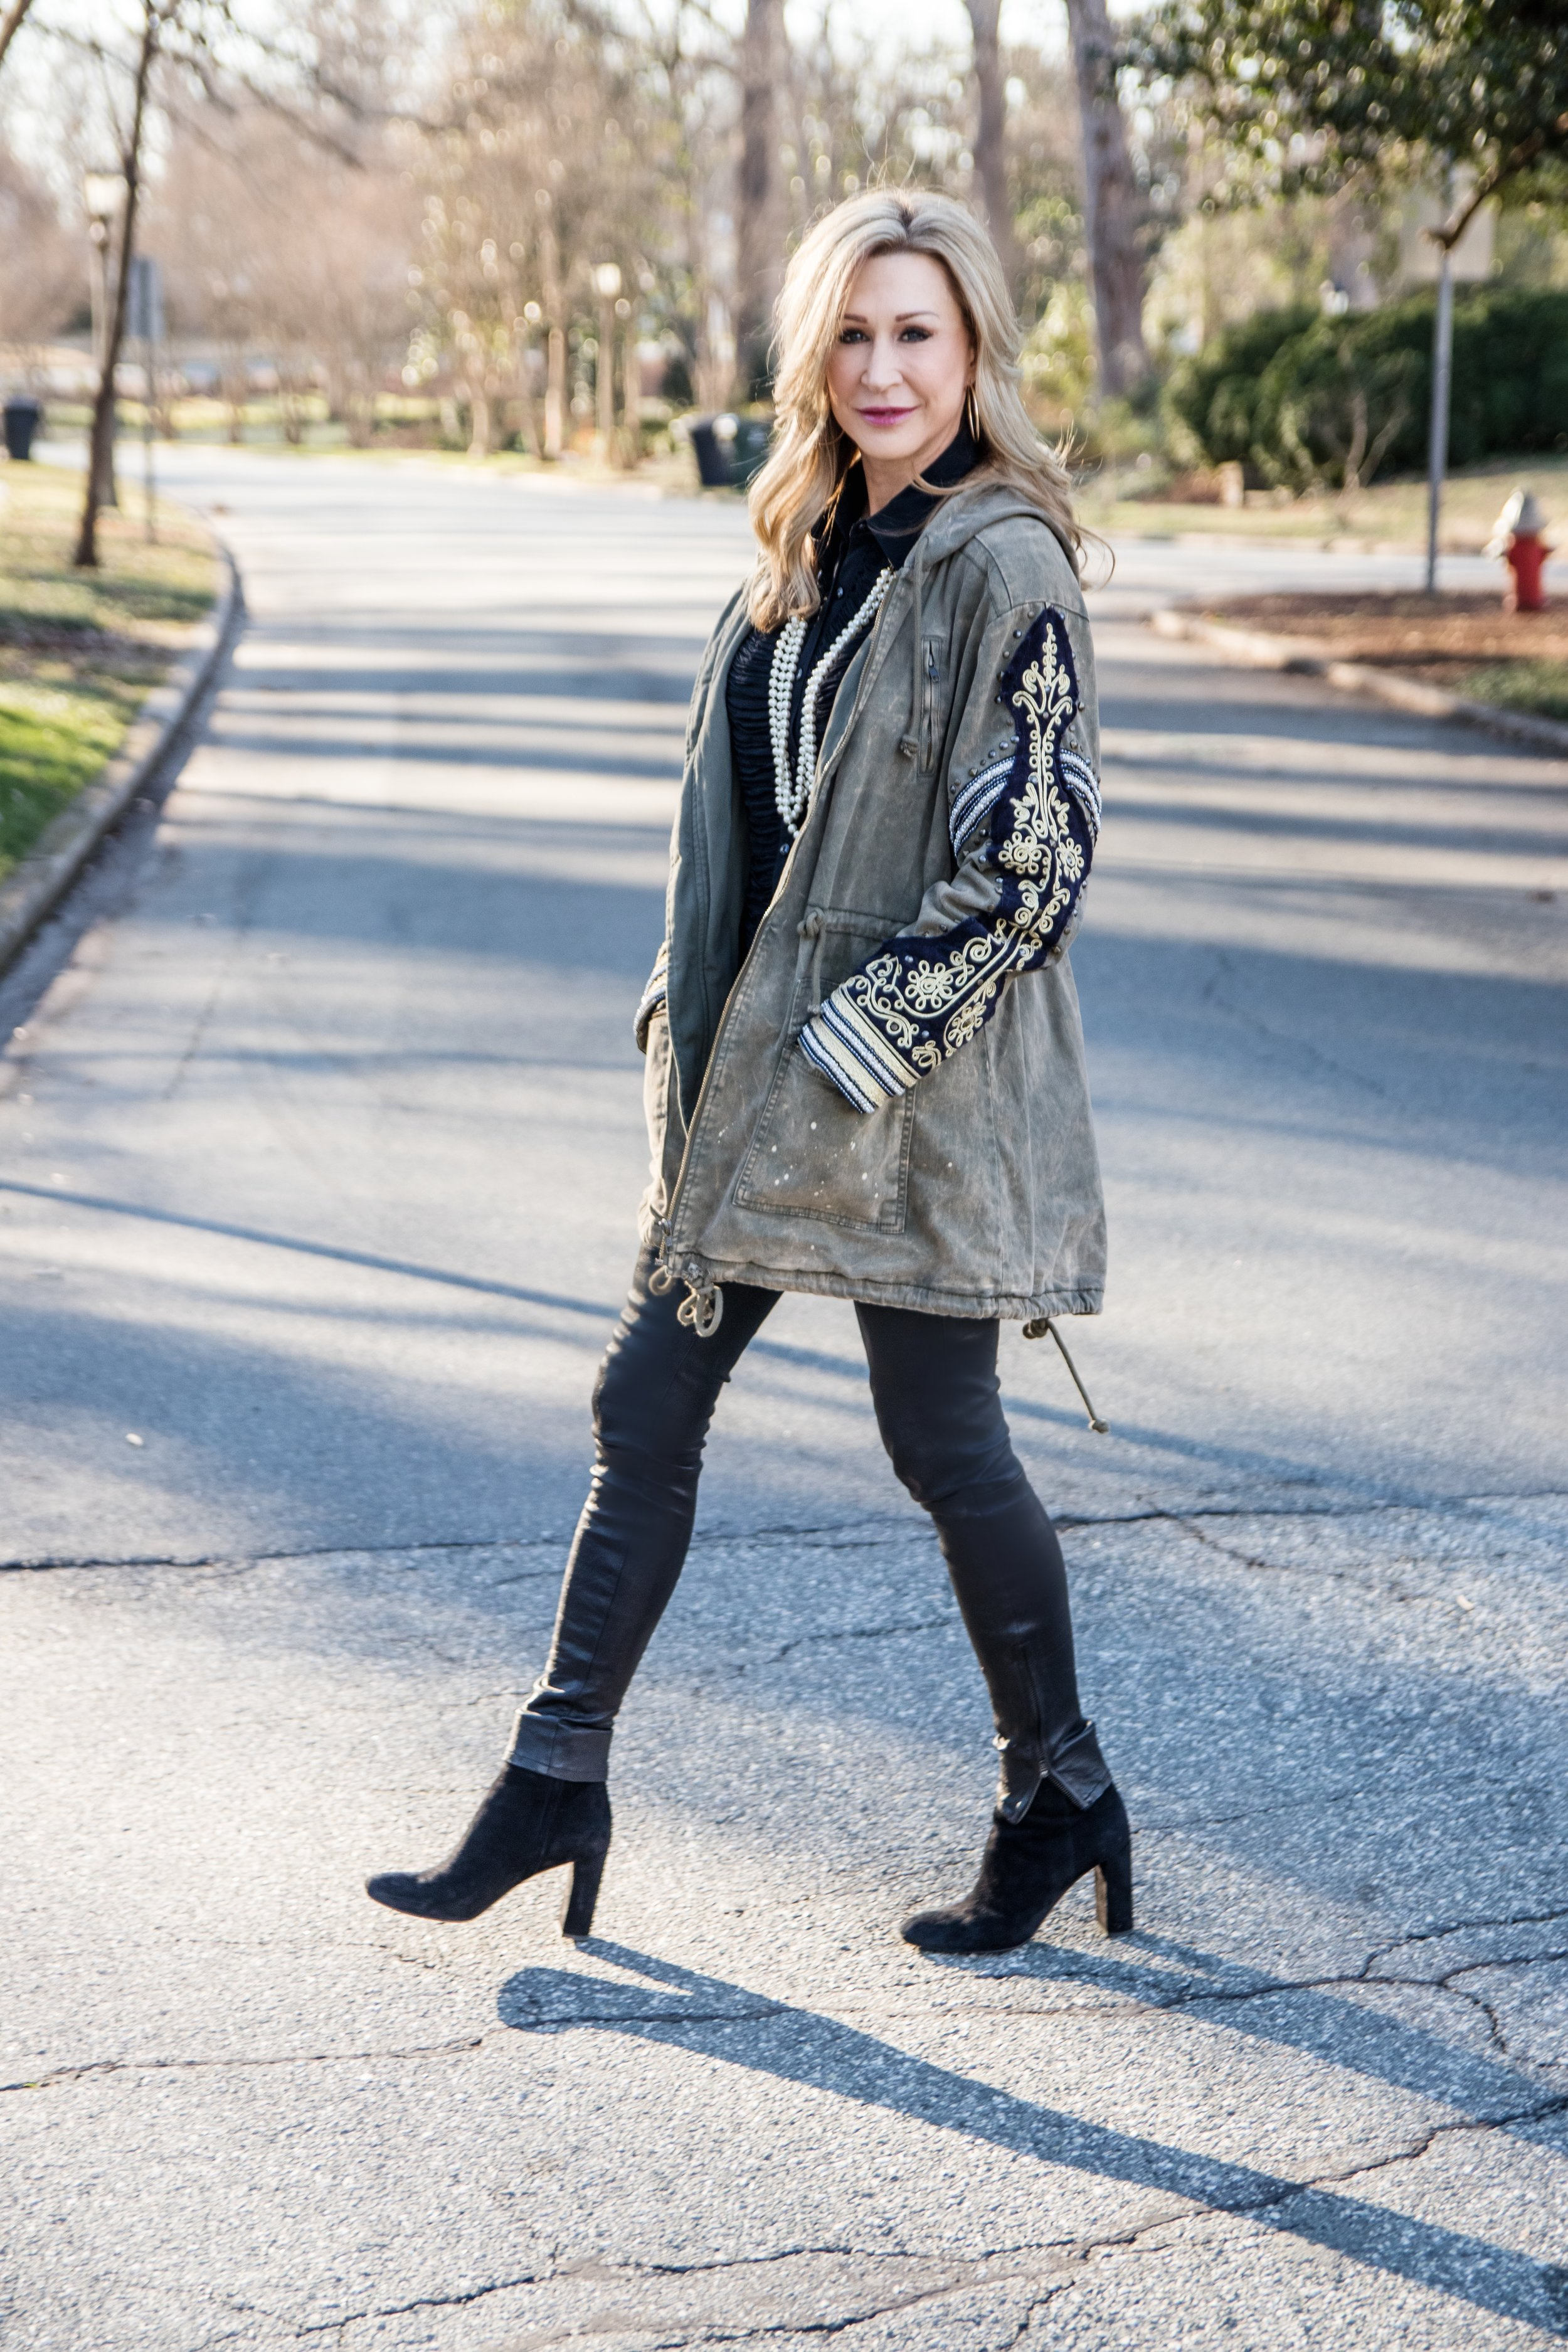 Embellished military jacket from Free People